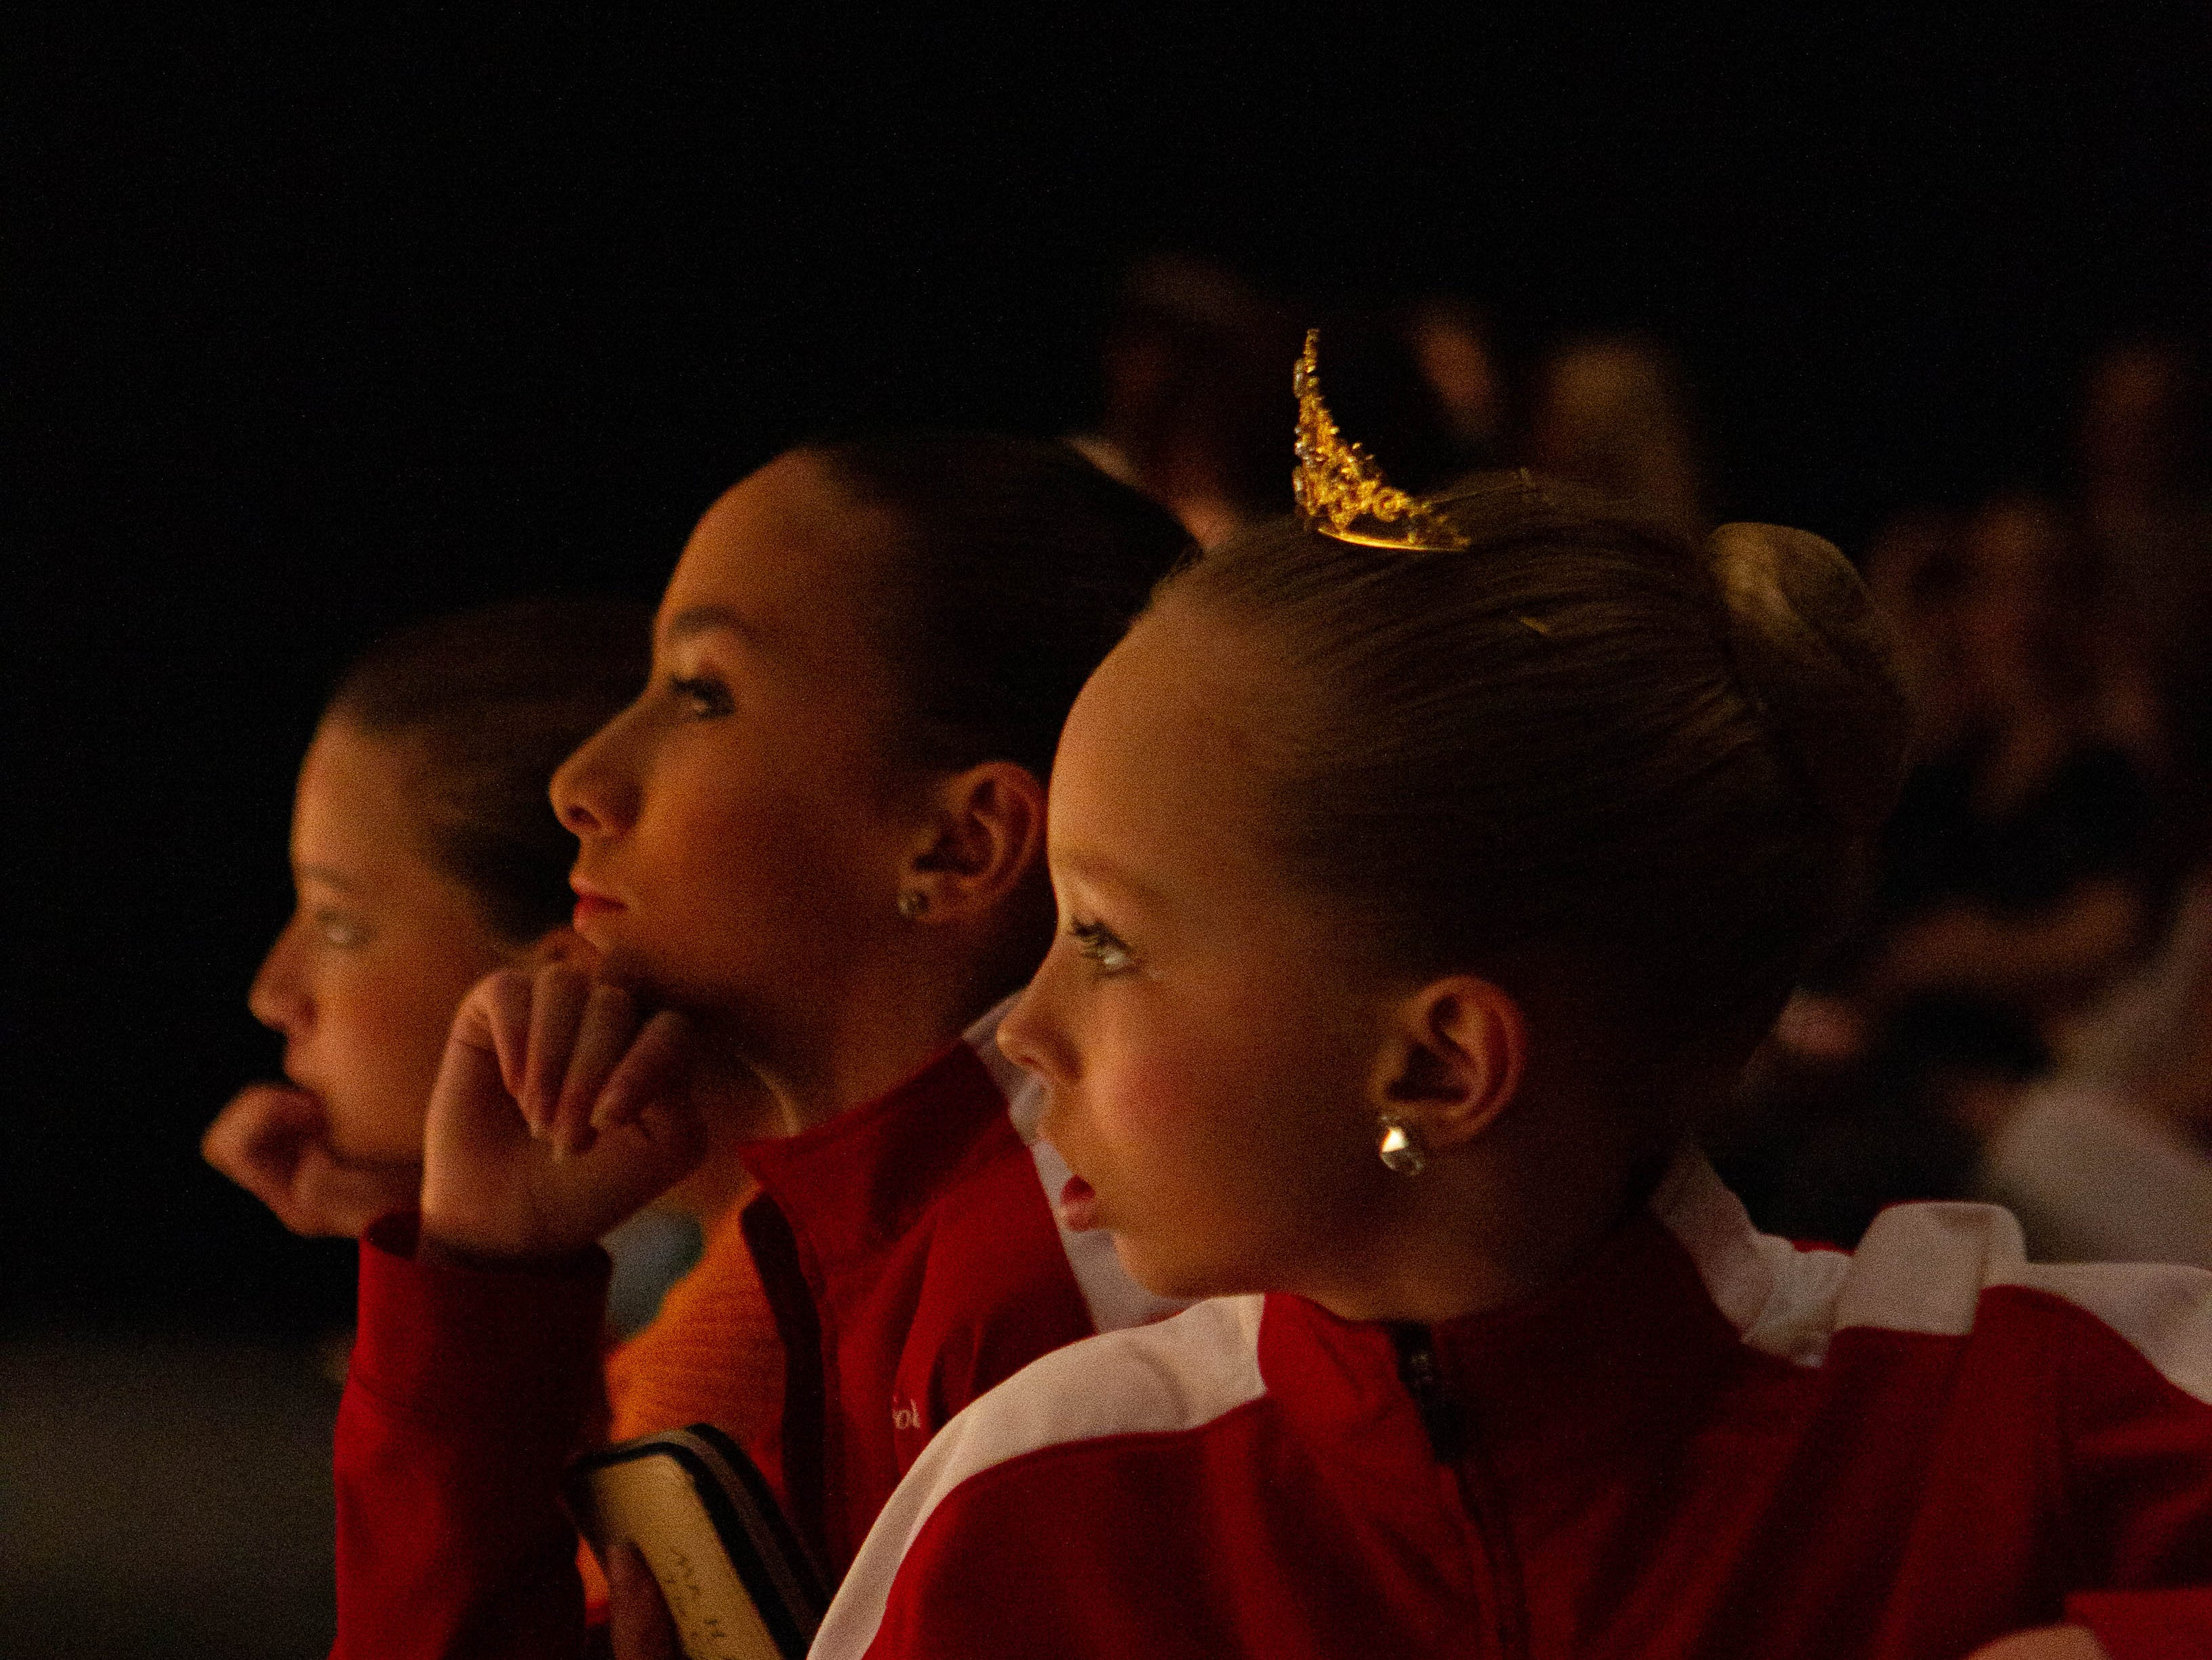 Ashlyn Arflin watches the senior ballet division warm up at the inaugural year of Grand Jeté dance competition at the South Carolina Governor's School for the Arts and Humanities, on Saturday, March 2, 2019.